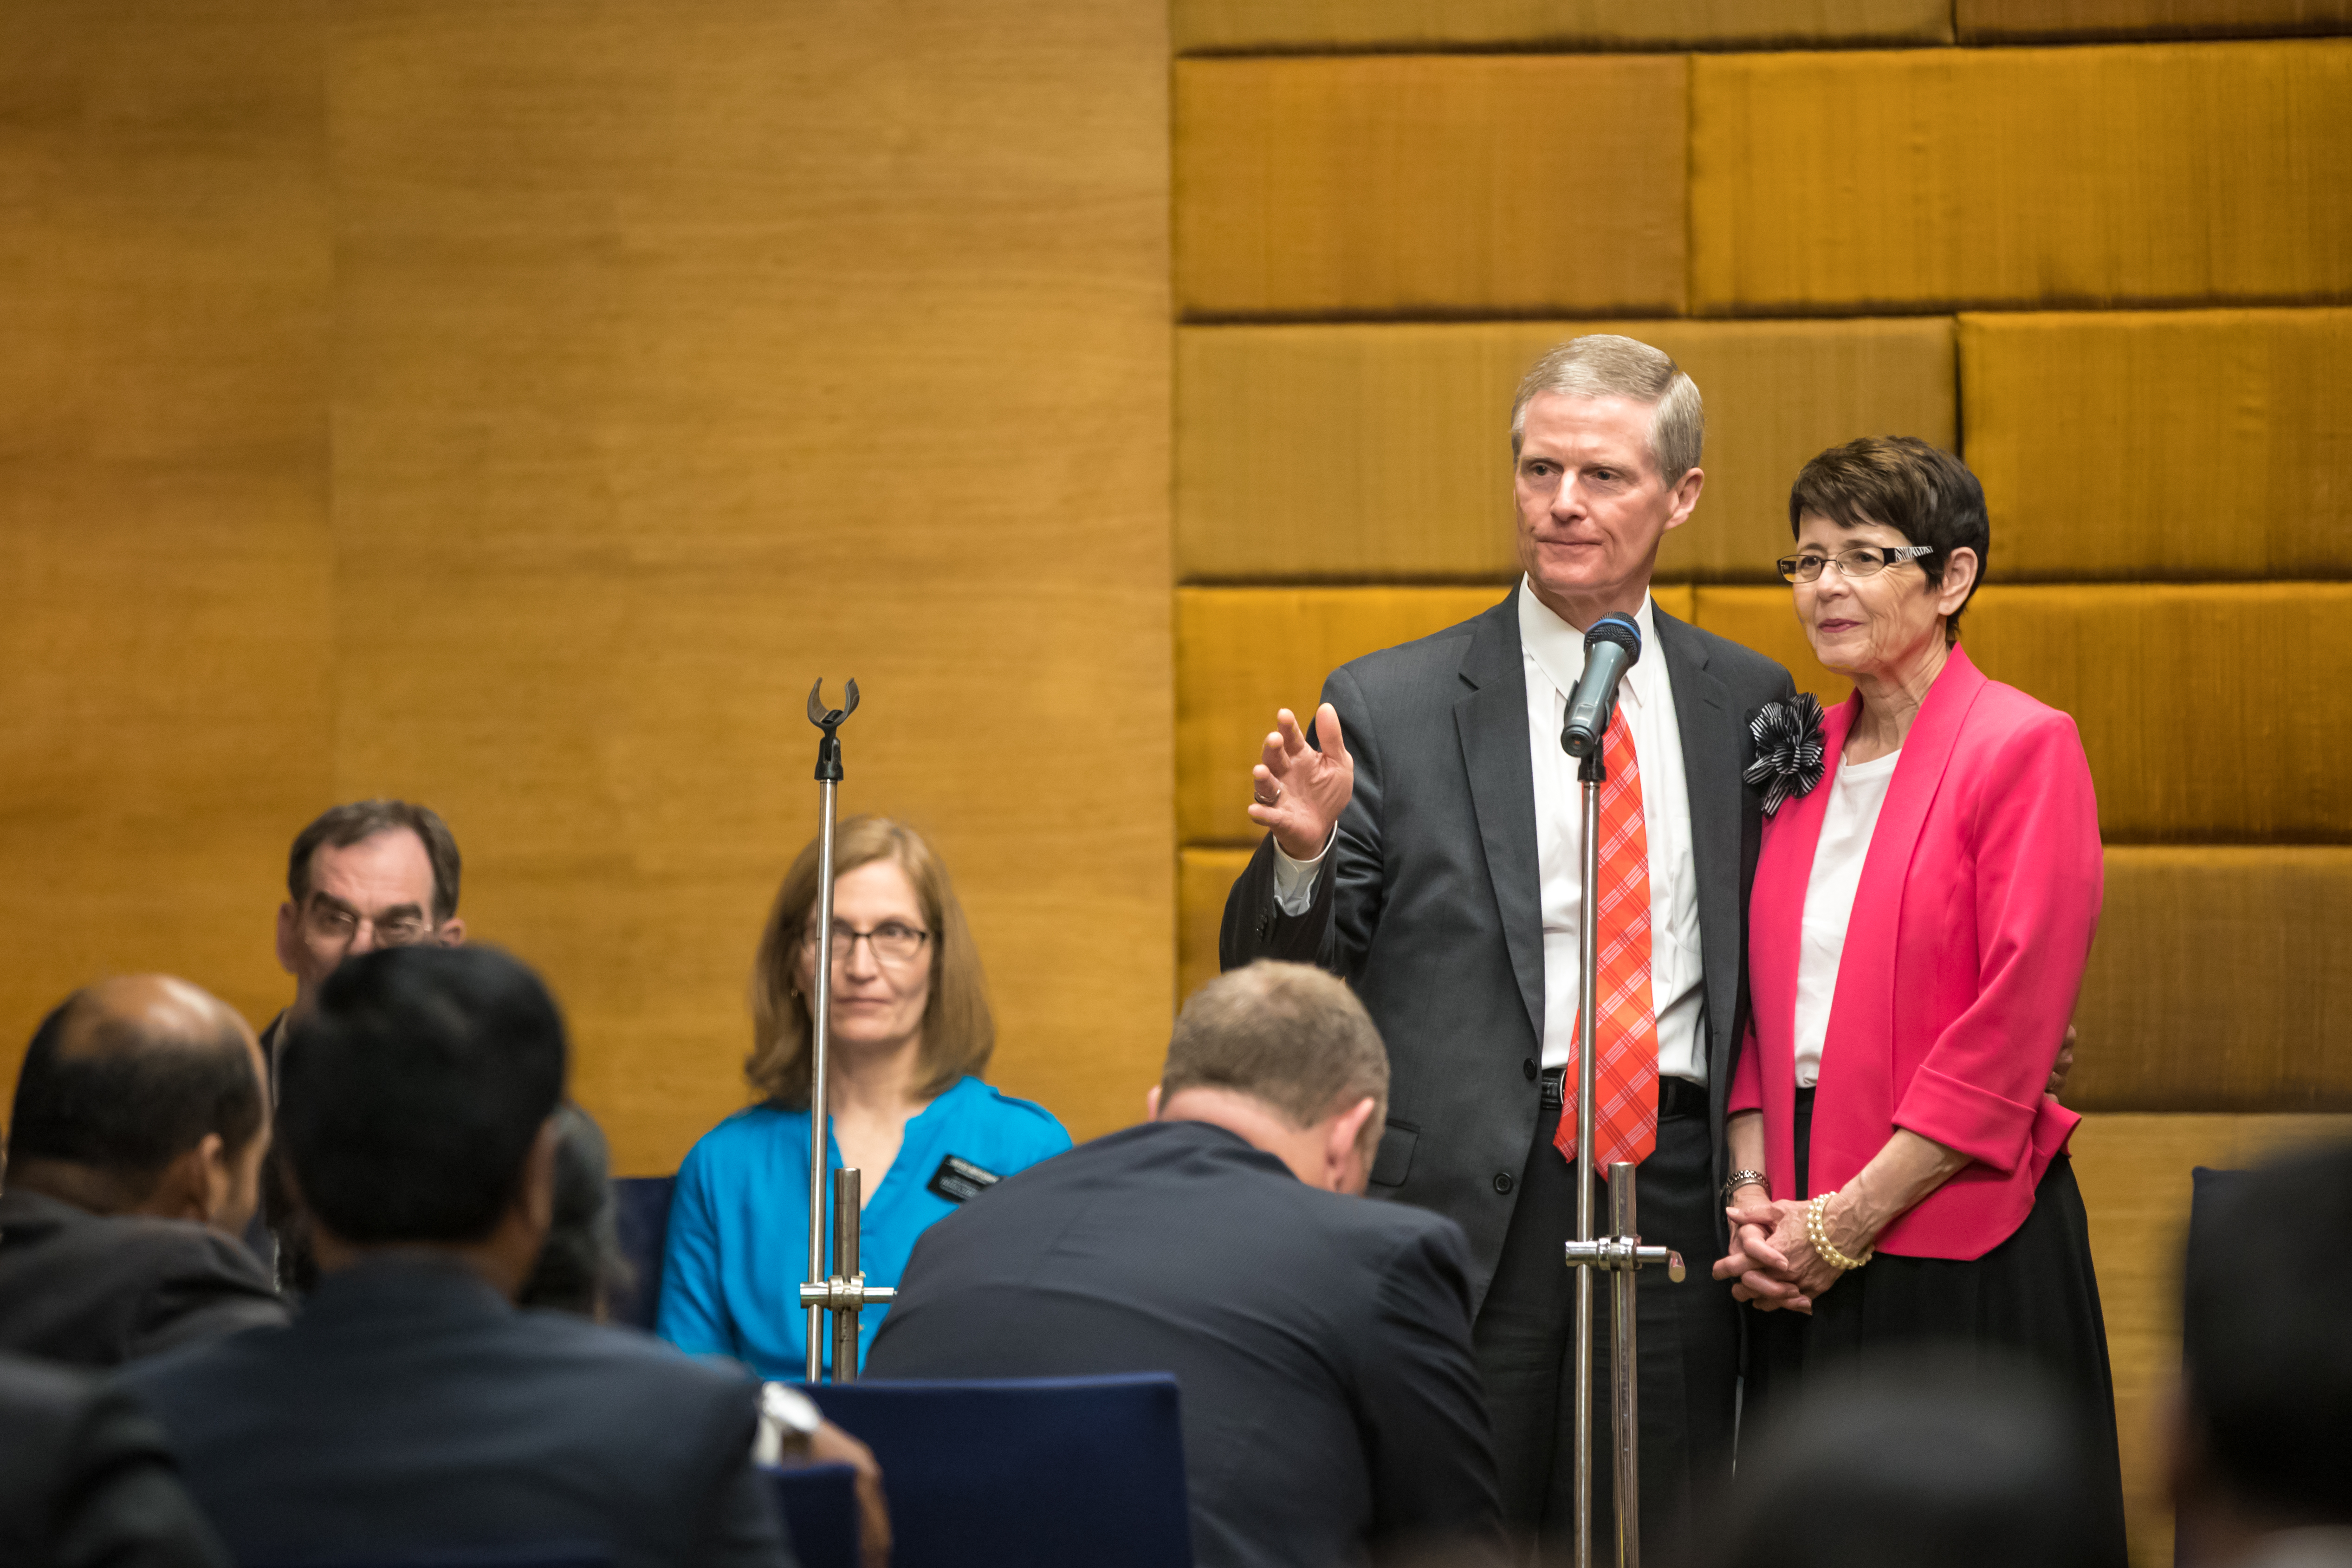 Elder David A. Bednar and his wife, Sister Susan R. Bednar, answer questions during a member meeting in Hyderabad, India.